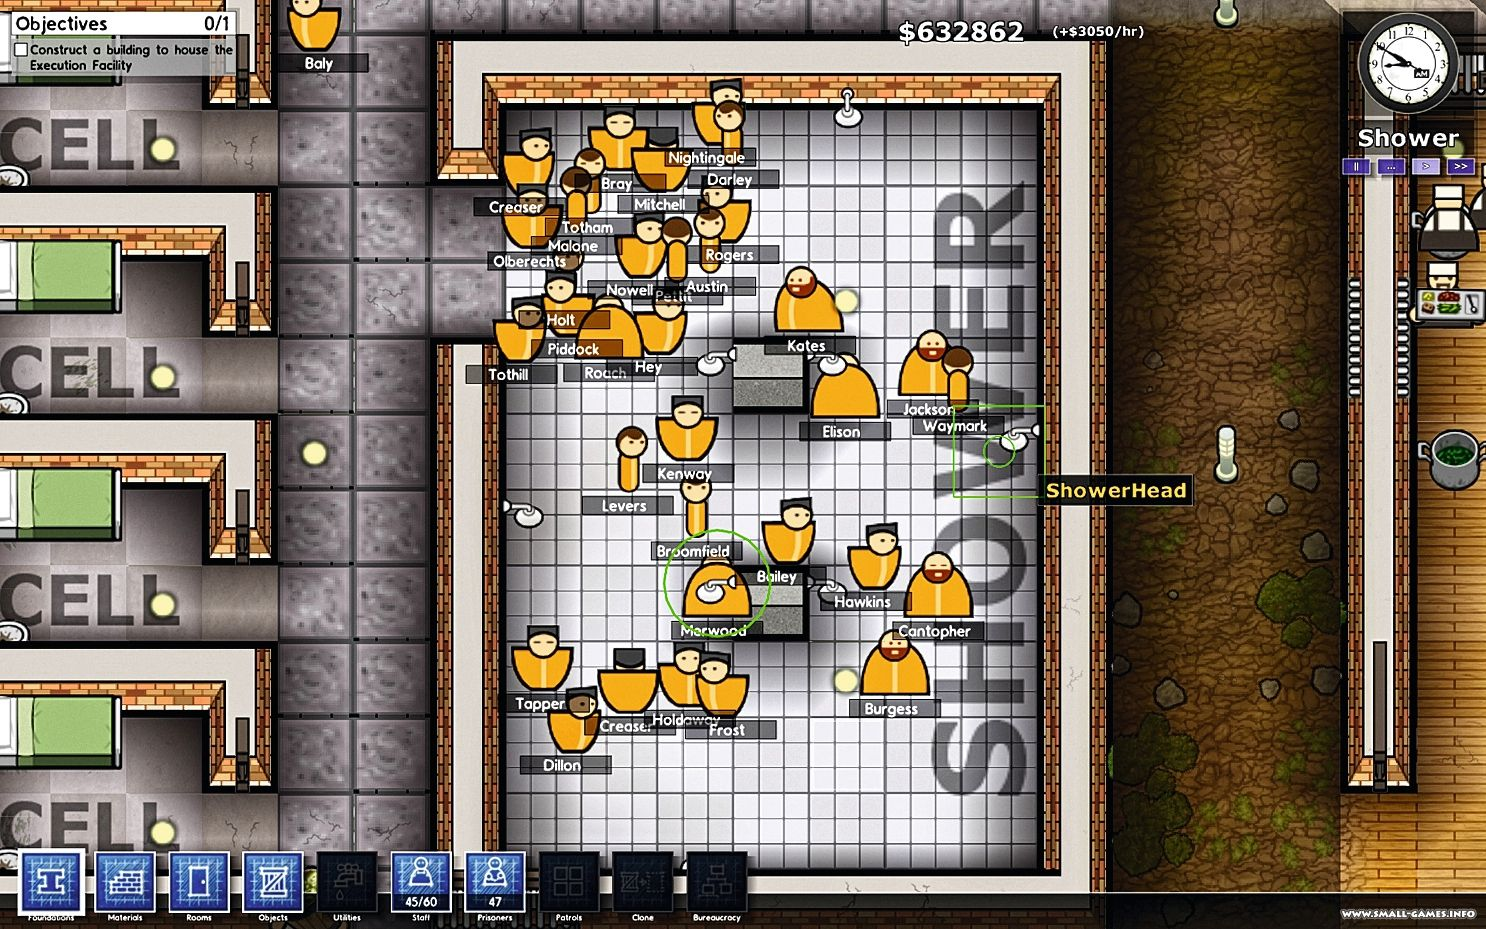 http://small-games.info/s/f/p/prison_architect_alpha1_4.jpg